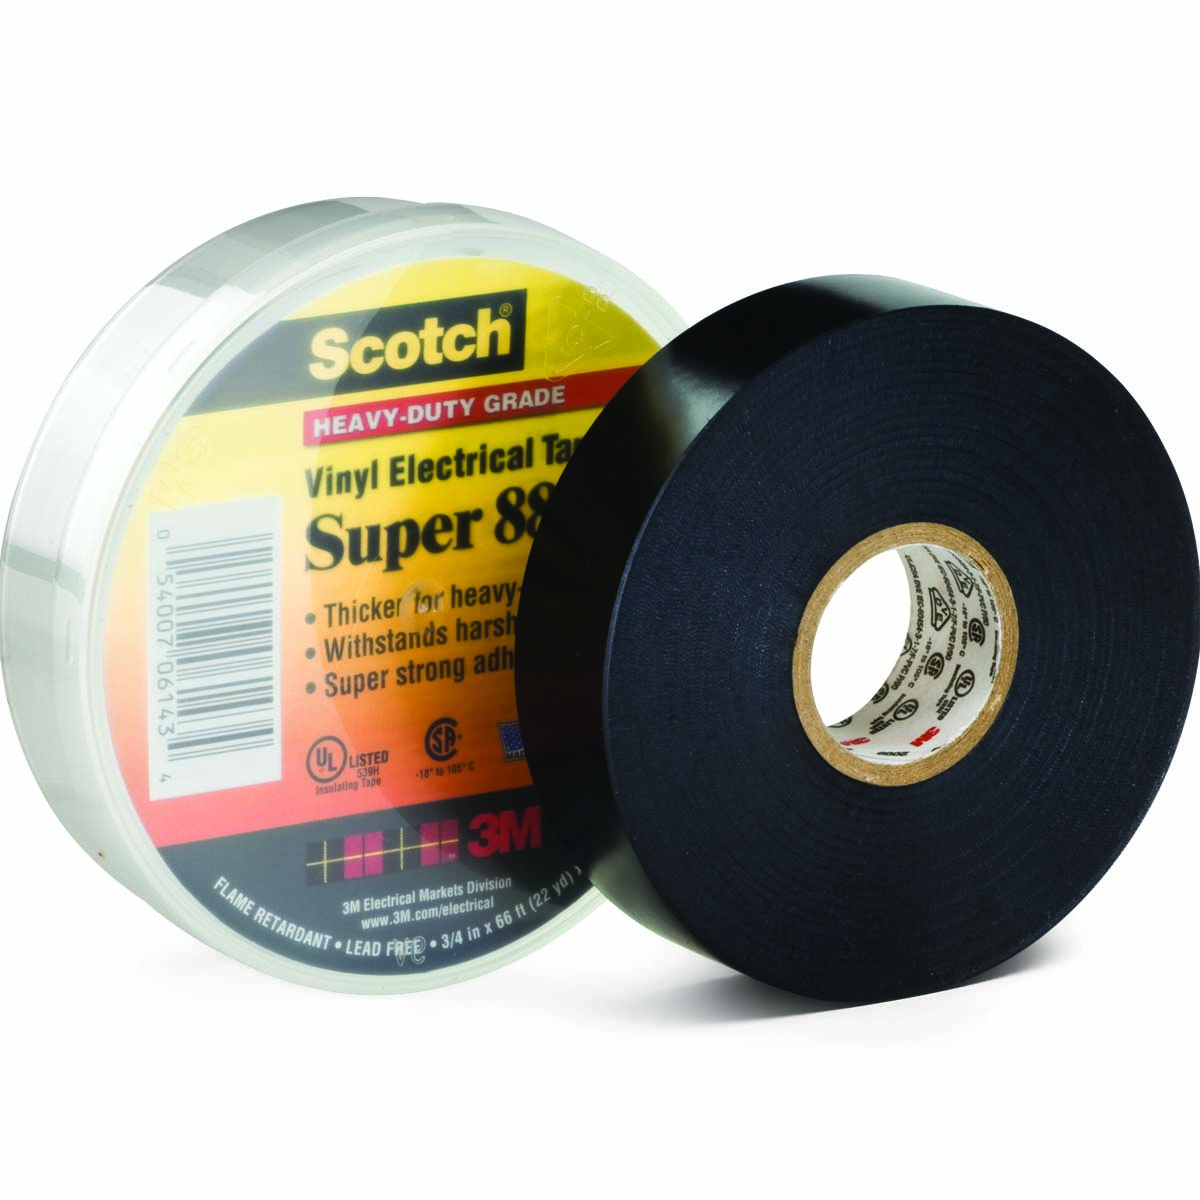 Scotch 174 Vinyl Electrical Tape Super 88 Kimball Midwest